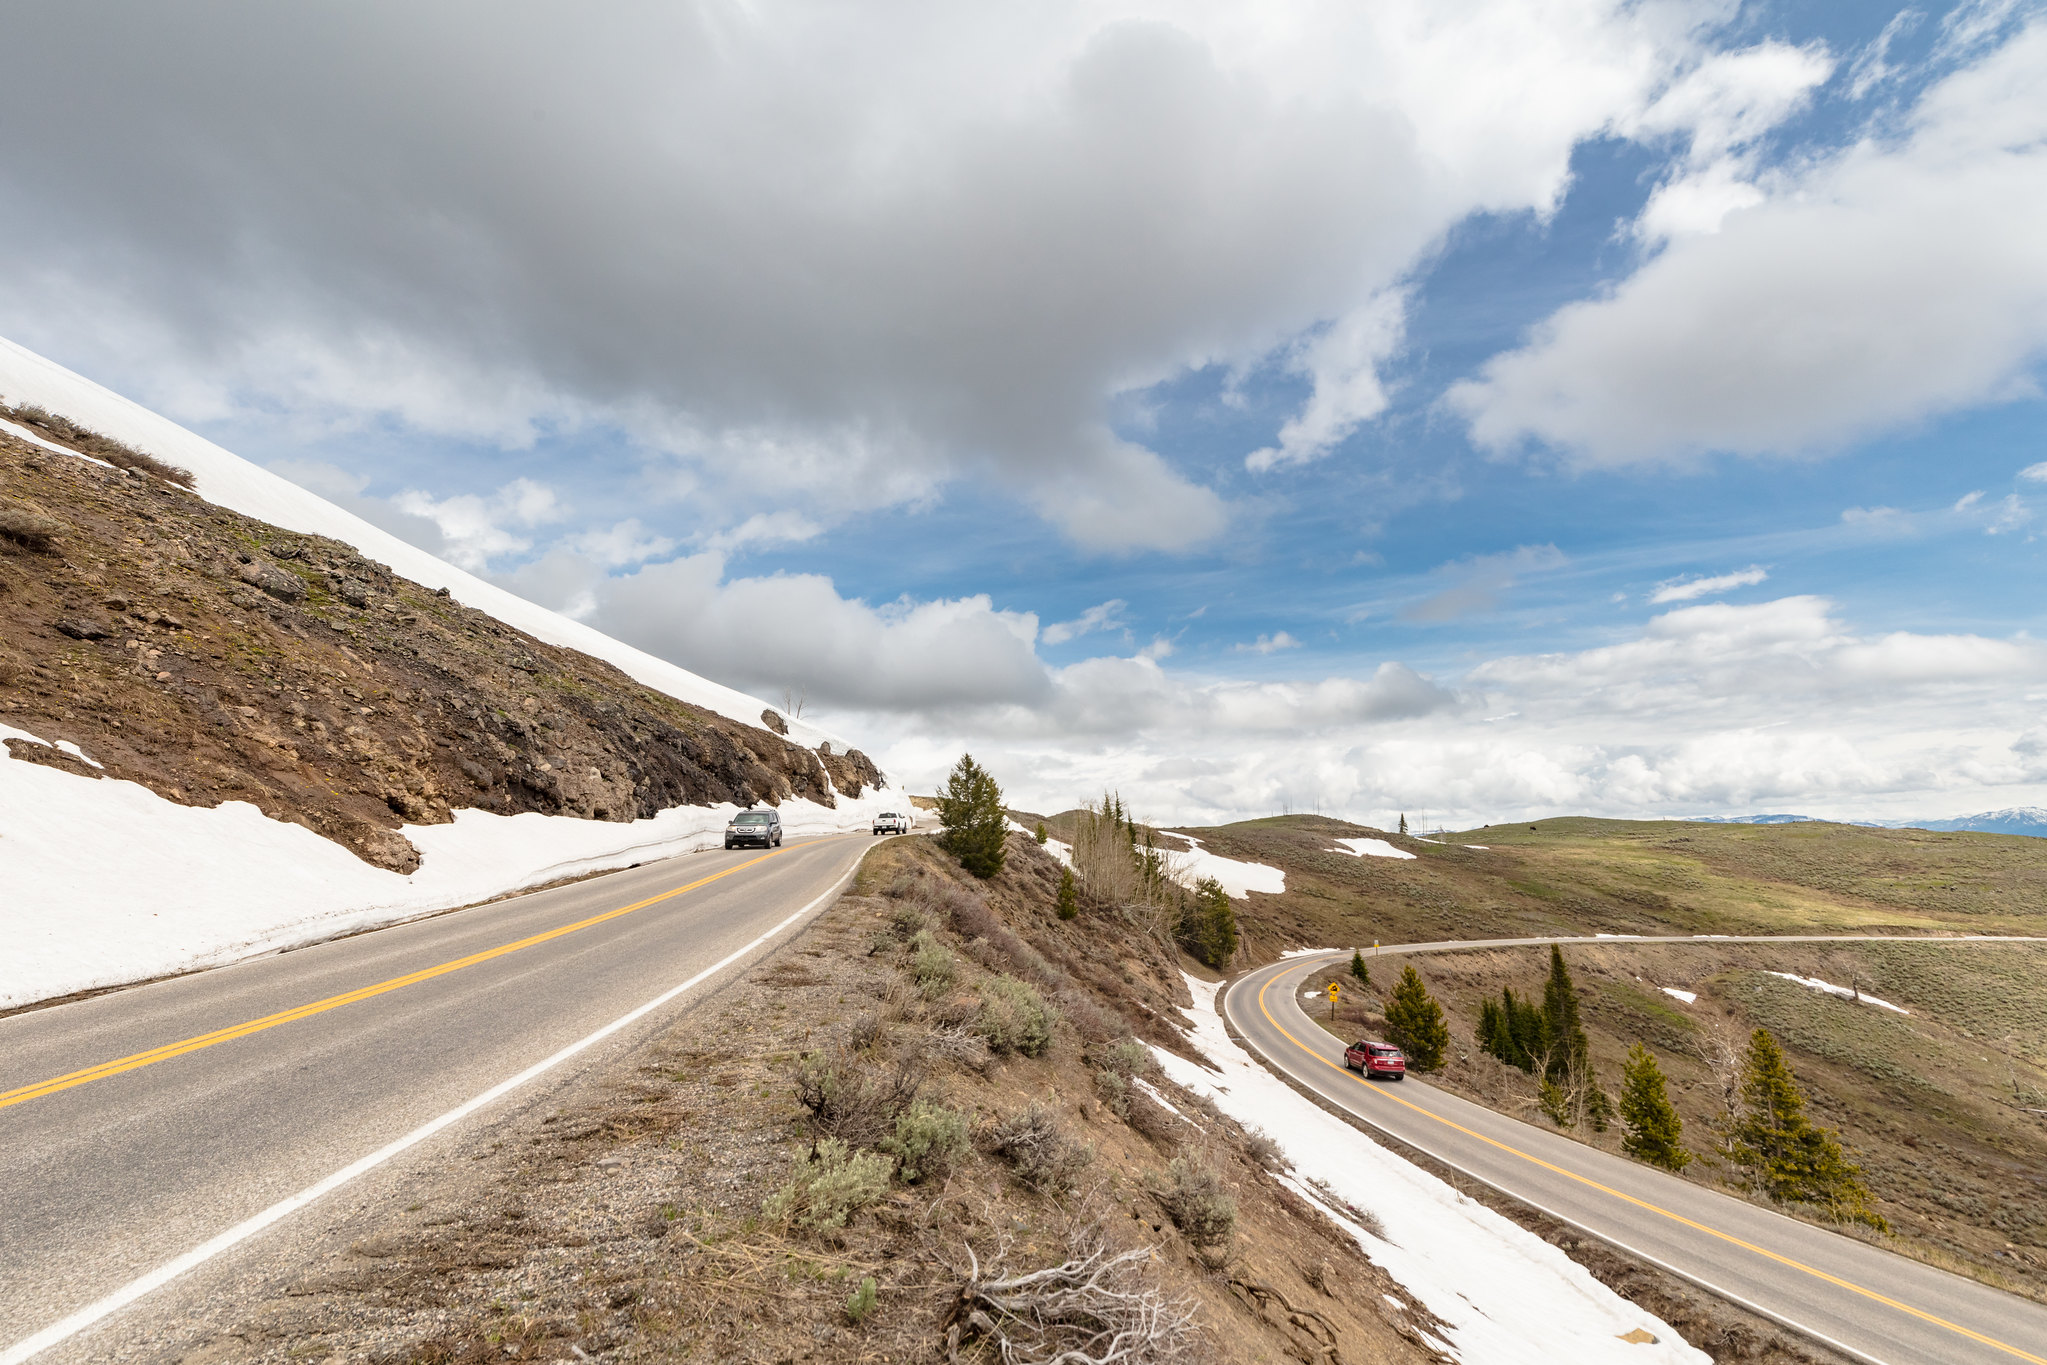 Dunraven Pass In Yellowstone closed to all travel - Yellowstone National Park (U.S. National Park Service)